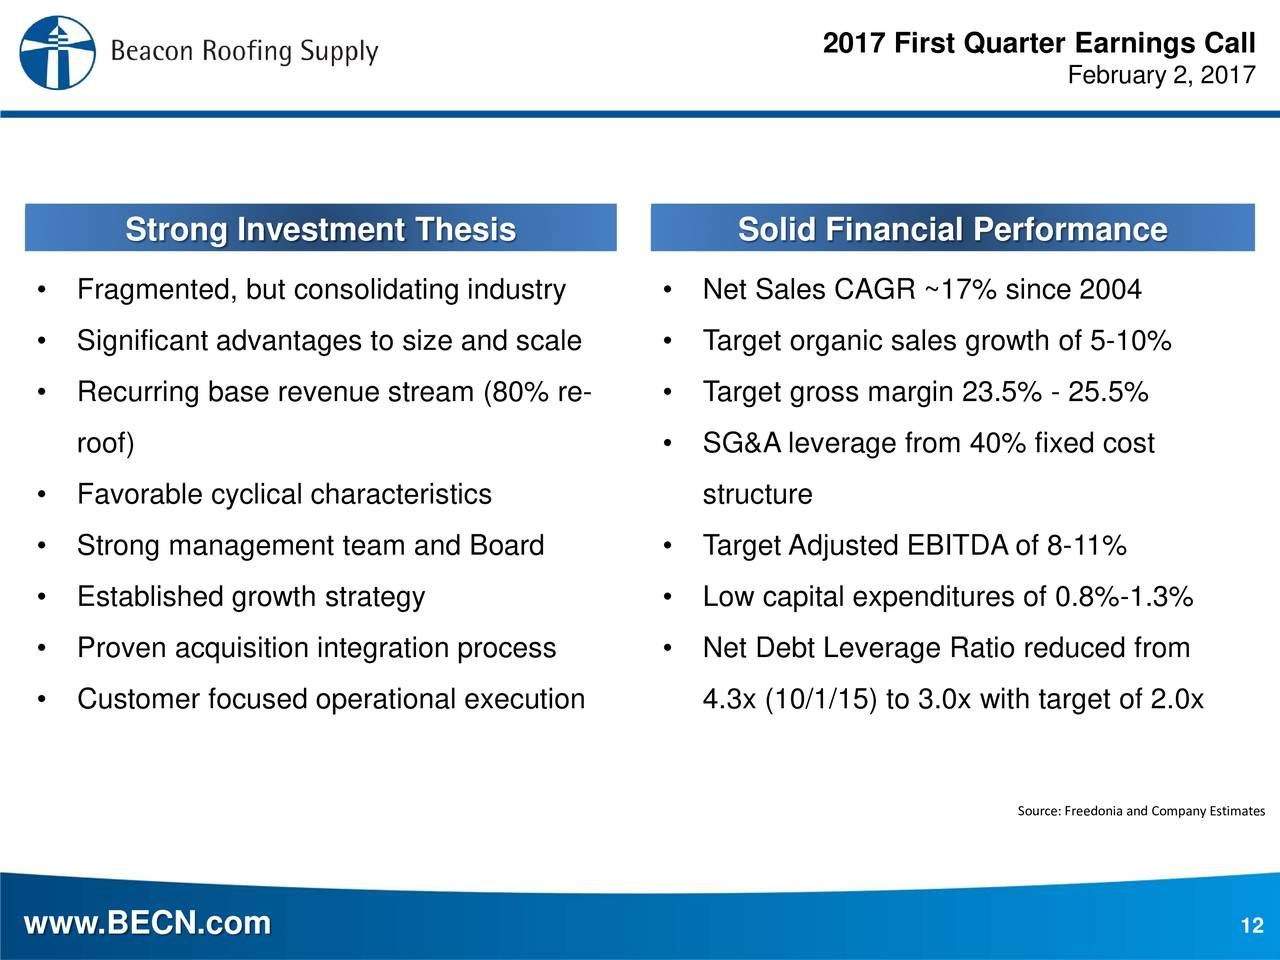 Beacon Roofing Supply Inc 2017 Q1 Results Earnings